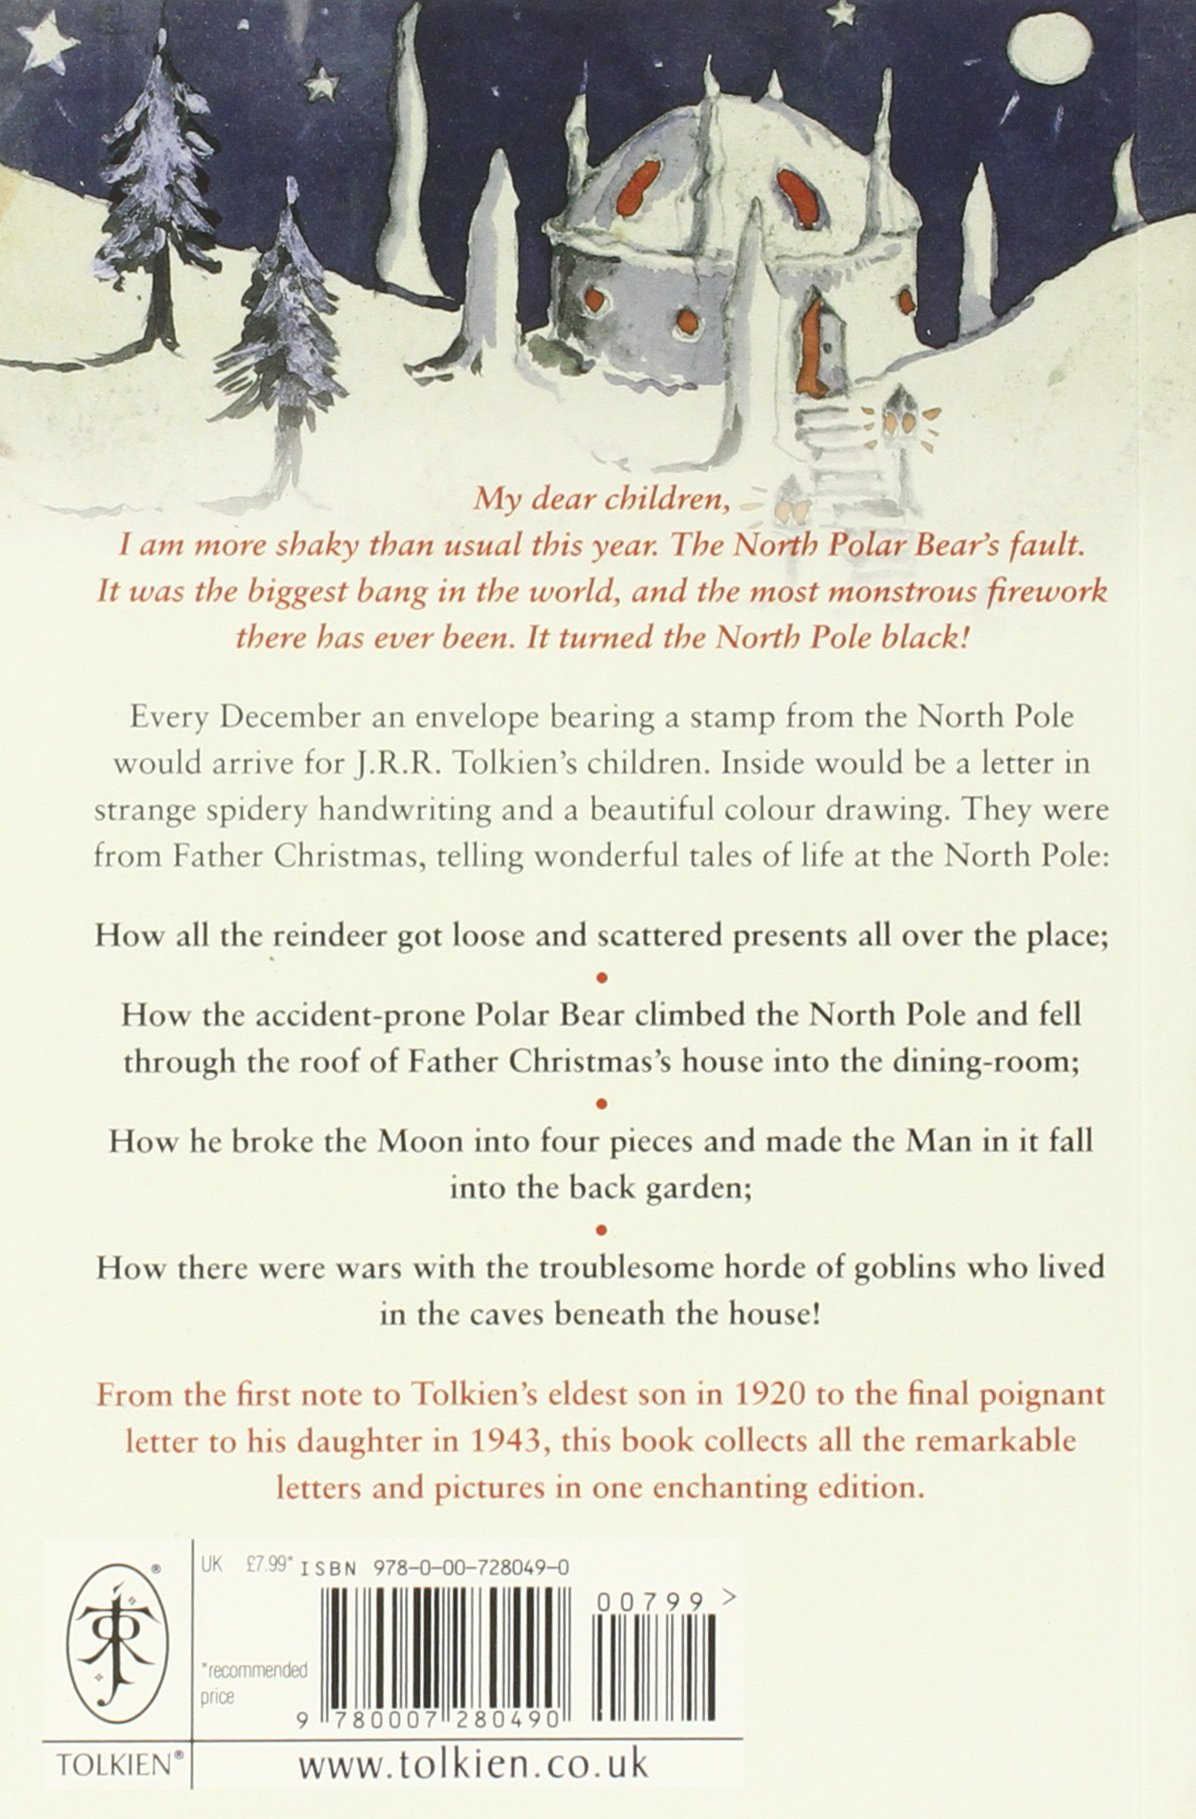 Letters from father christmas amazon j r r tolkien letters from father christmas amazon j r r tolkien 9780007280490 books spiritdancerdesigns